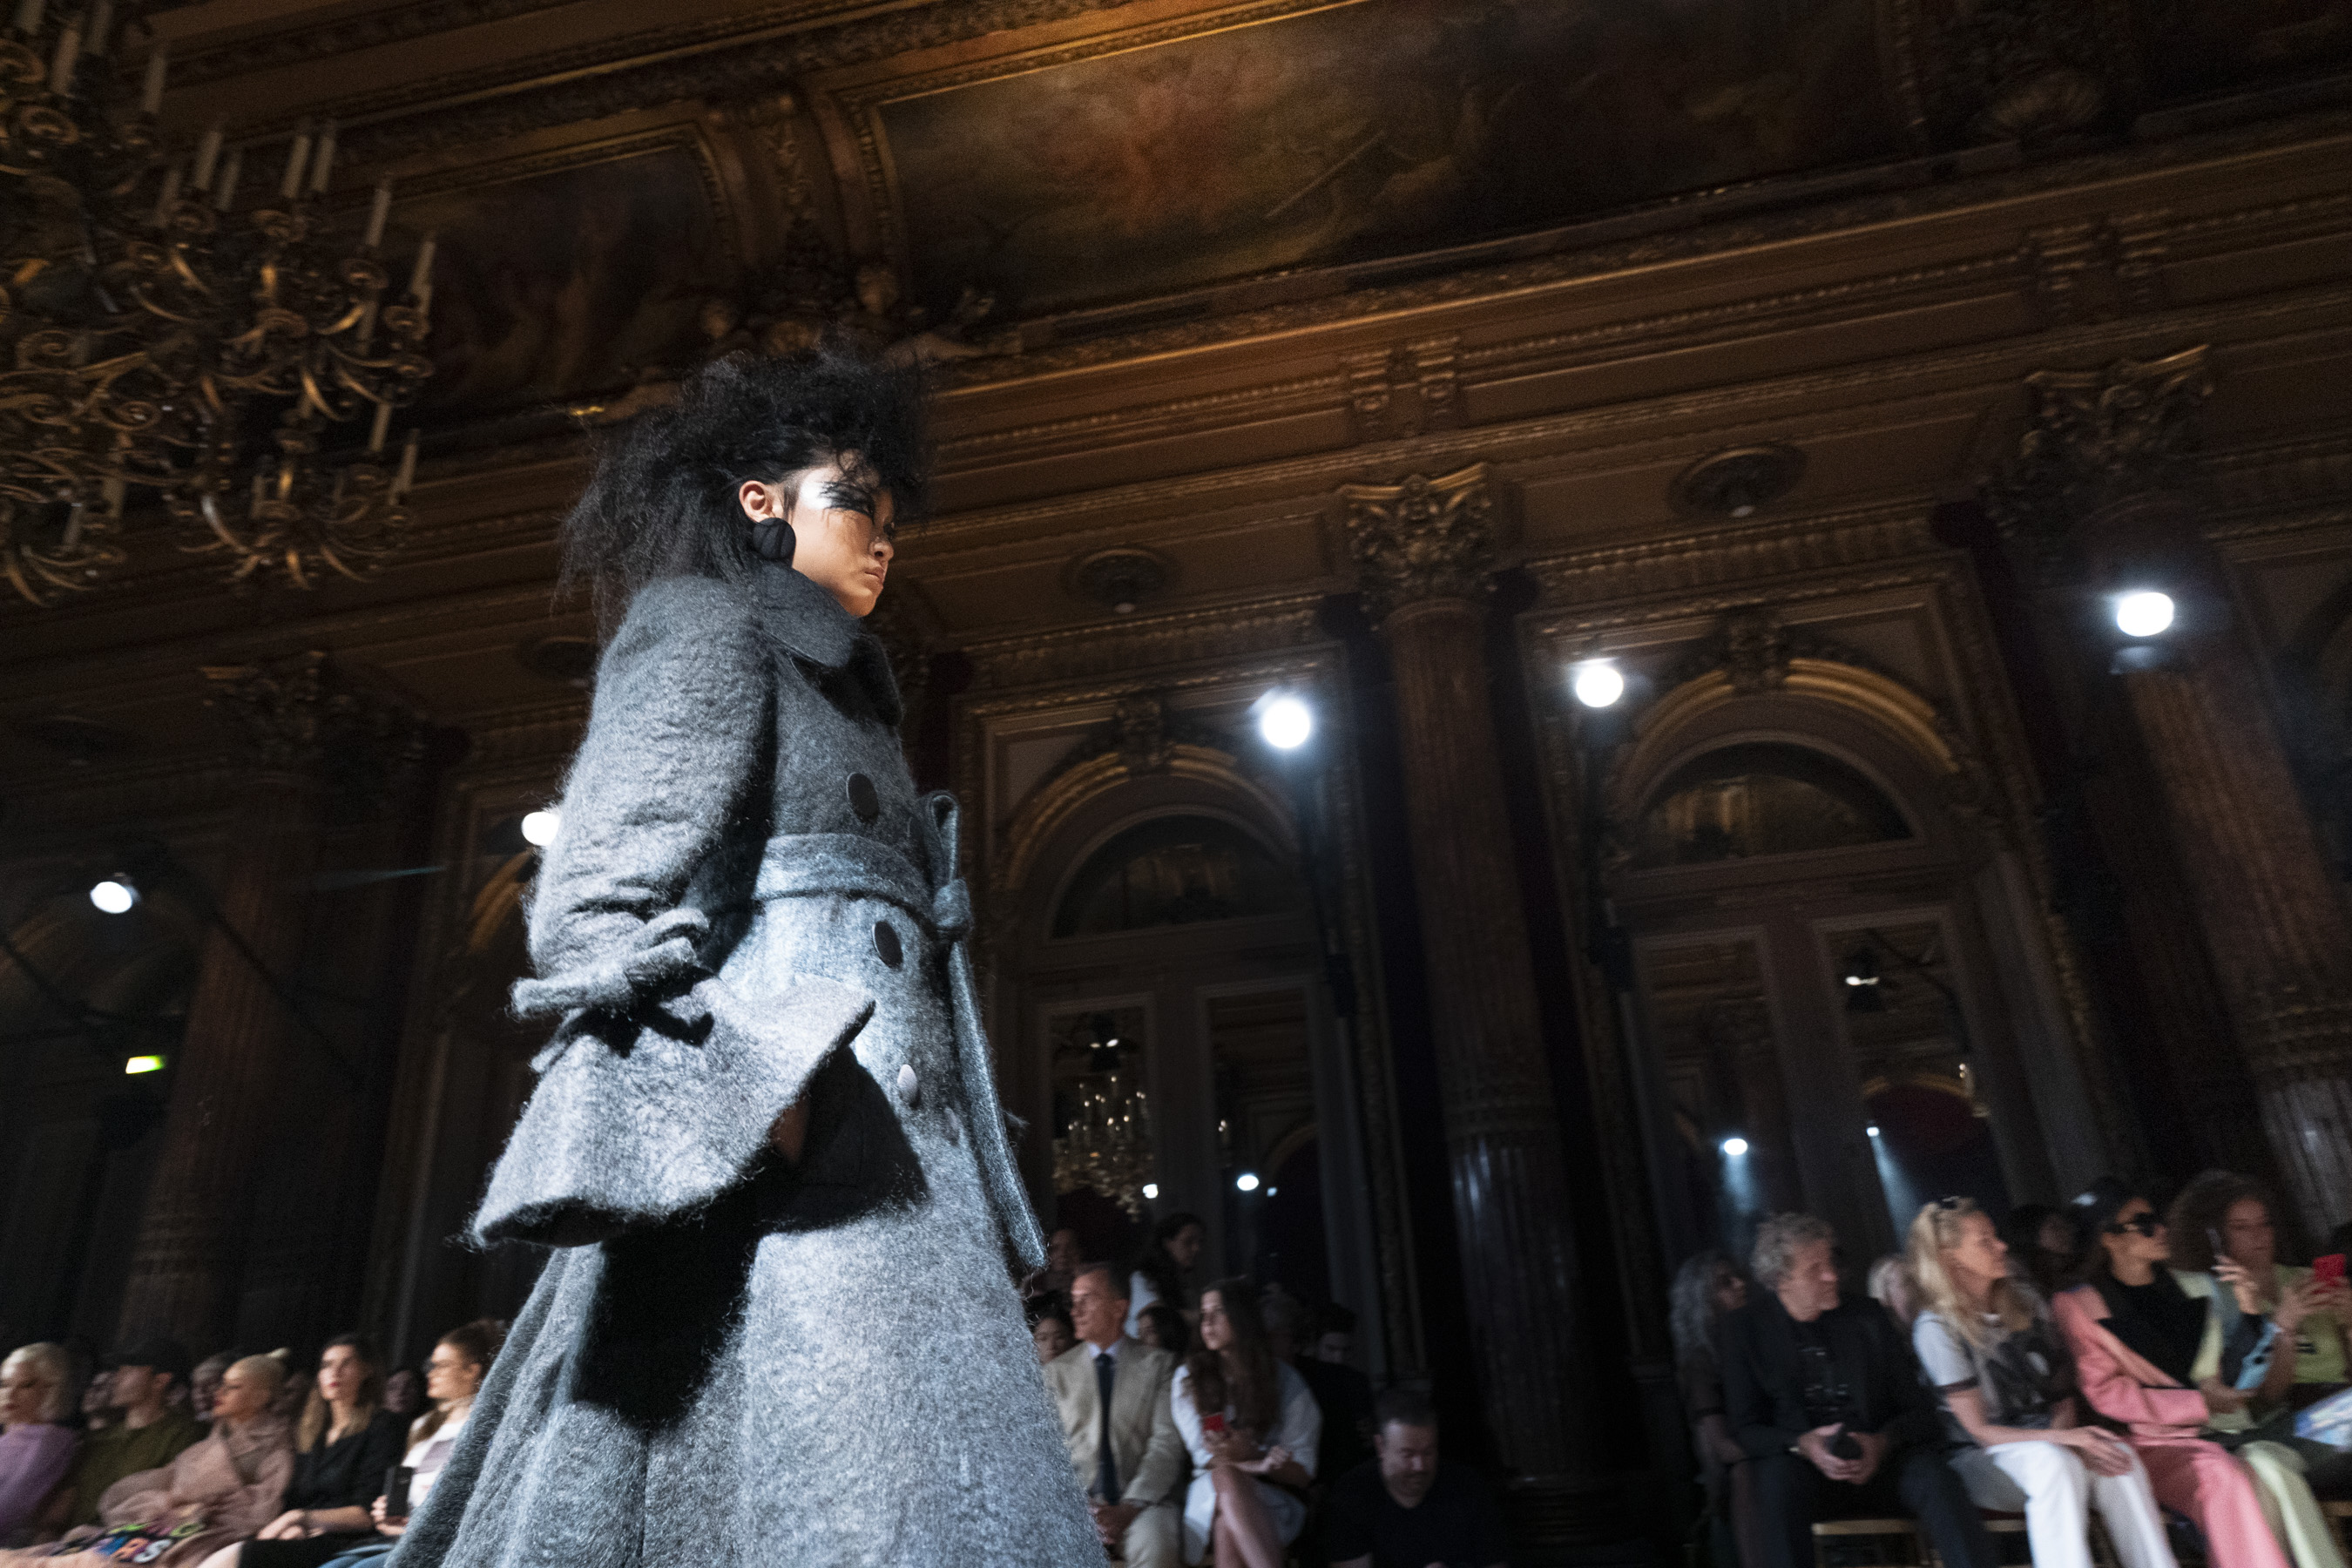 Viktor & Rolf Couture Fall 2019 Fashion Show Atmosphere